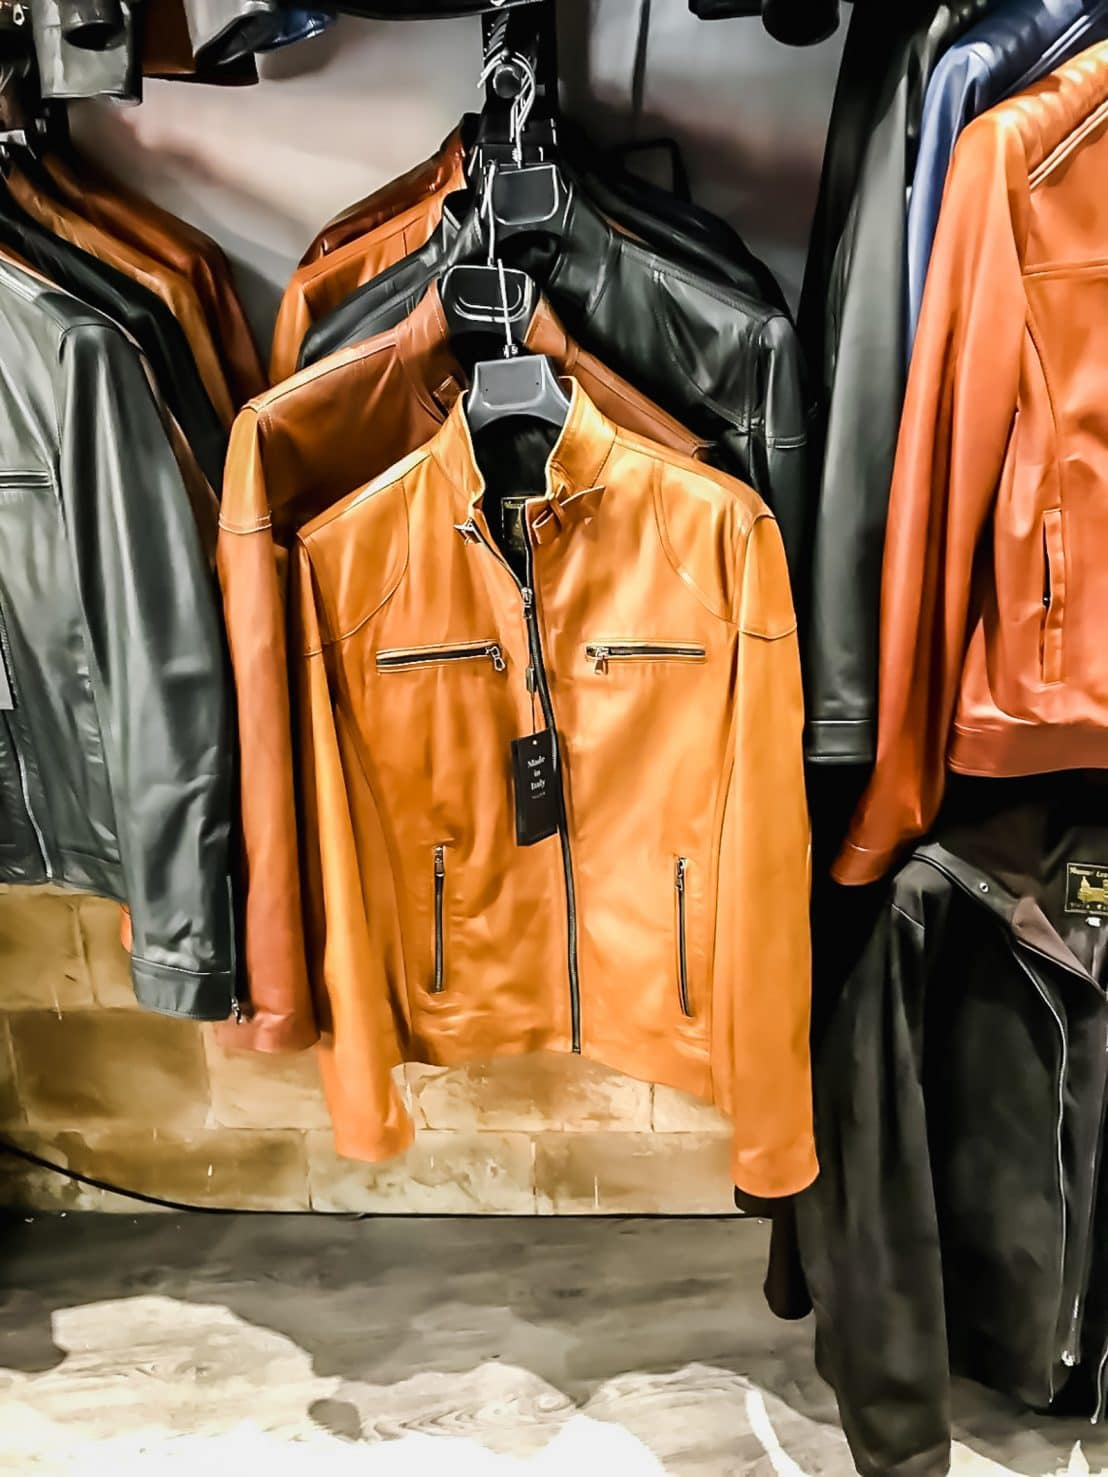 A photo of a row of leather jackets for men in a store.